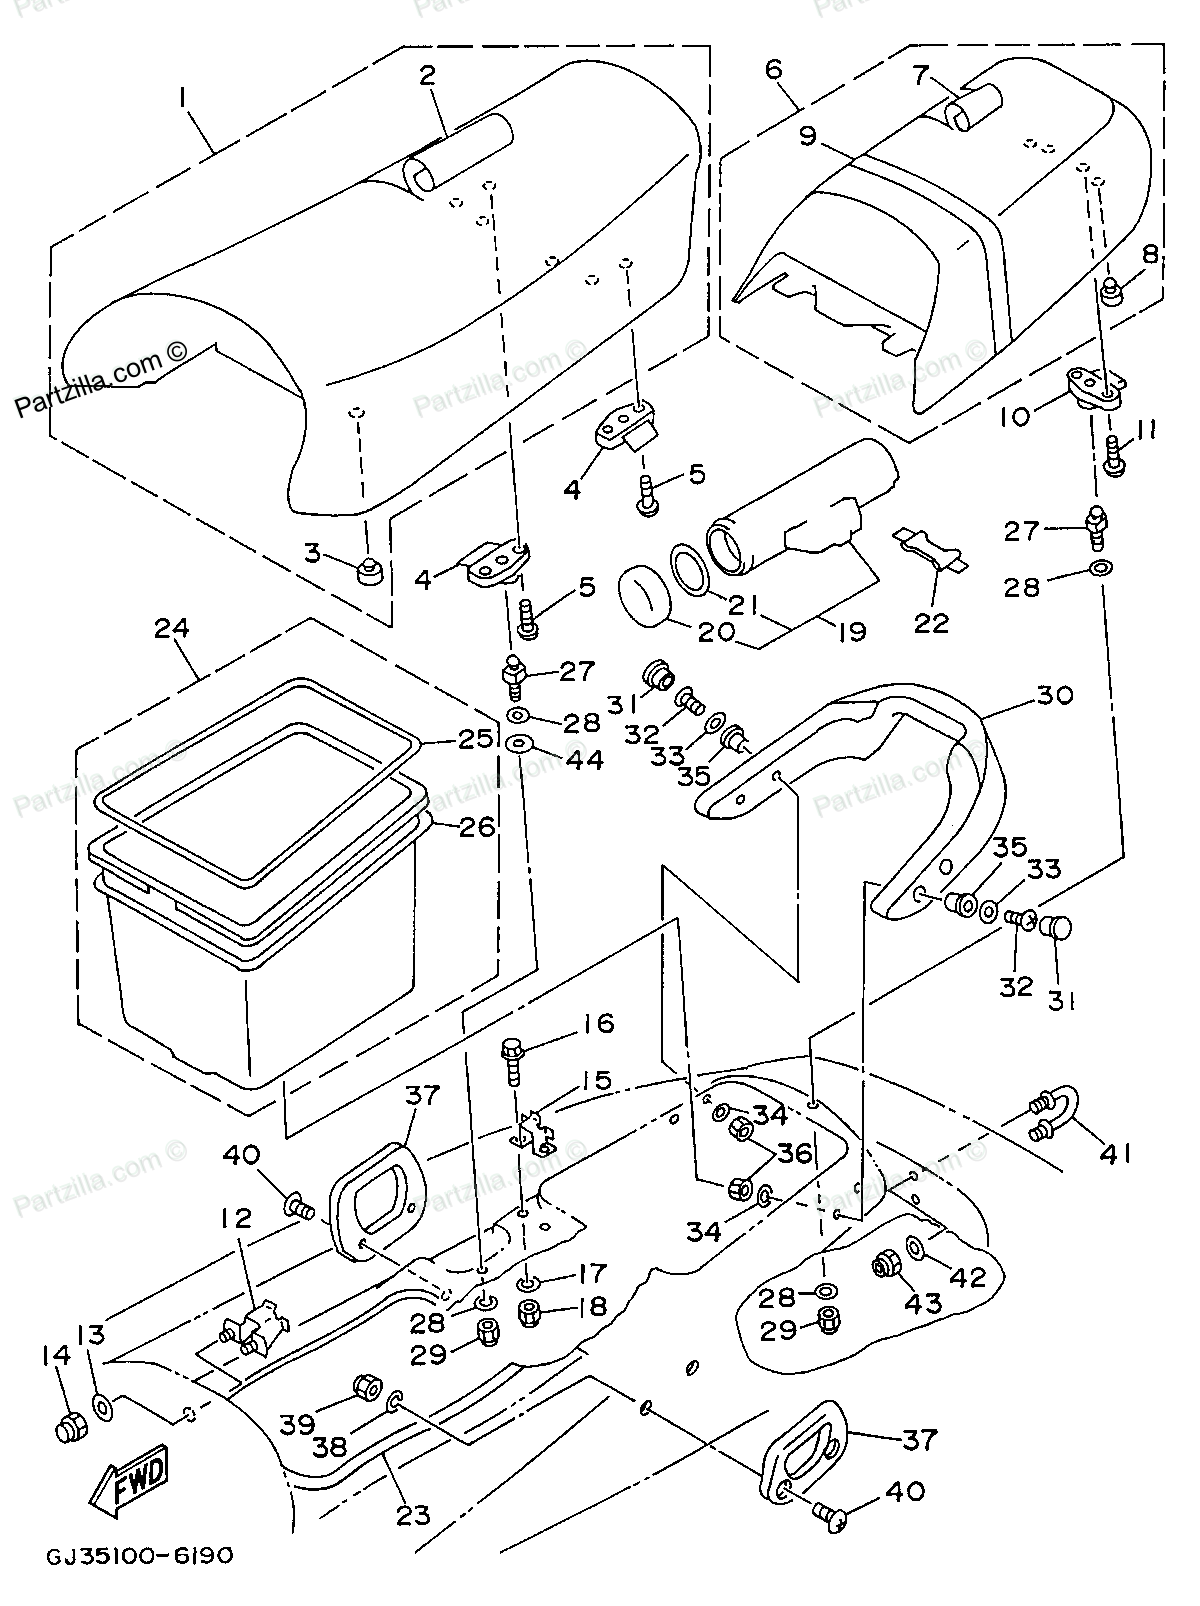 yamaha waverunner engine diagram wiring diagram details 1996 yamaha wave venture 700 yamaha waverunner parts 1996 [ 1200 x 1606 Pixel ]